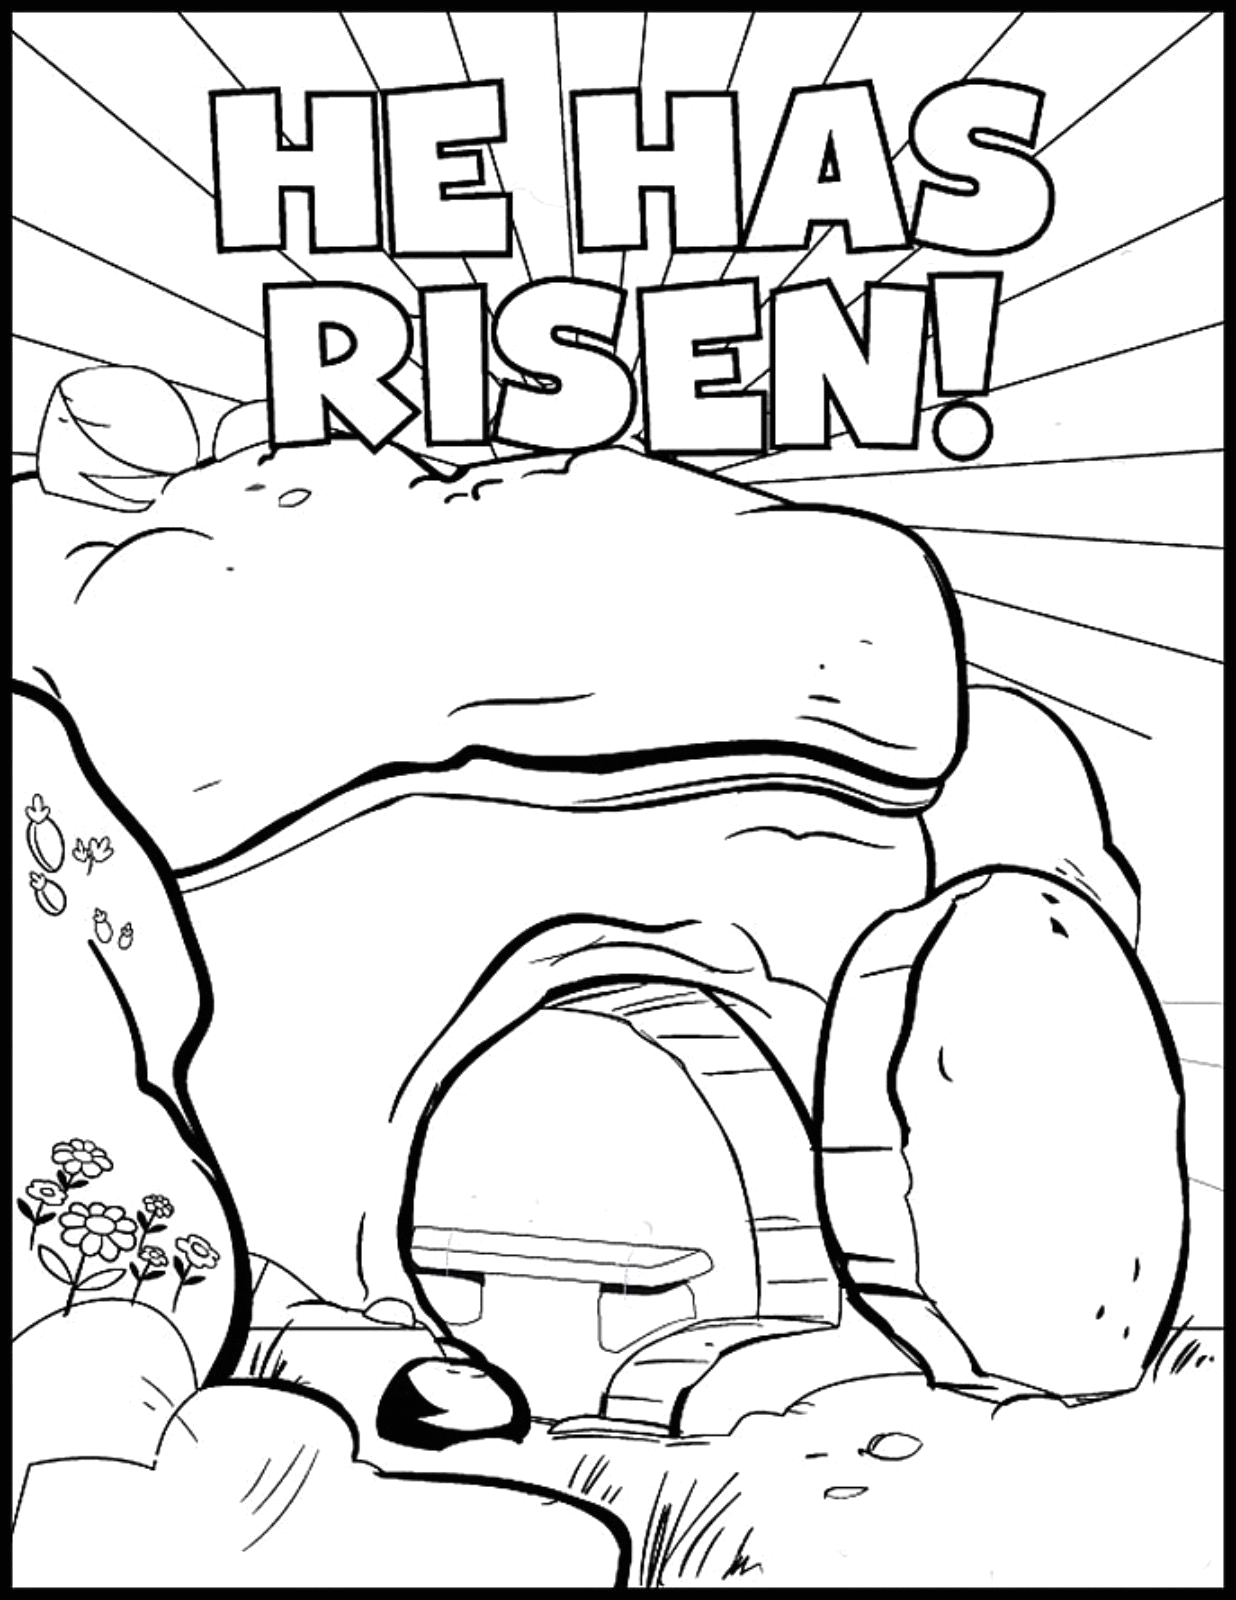 Easter Coloring Pages for Sunday School Preschool He Has Risen Coloring Page